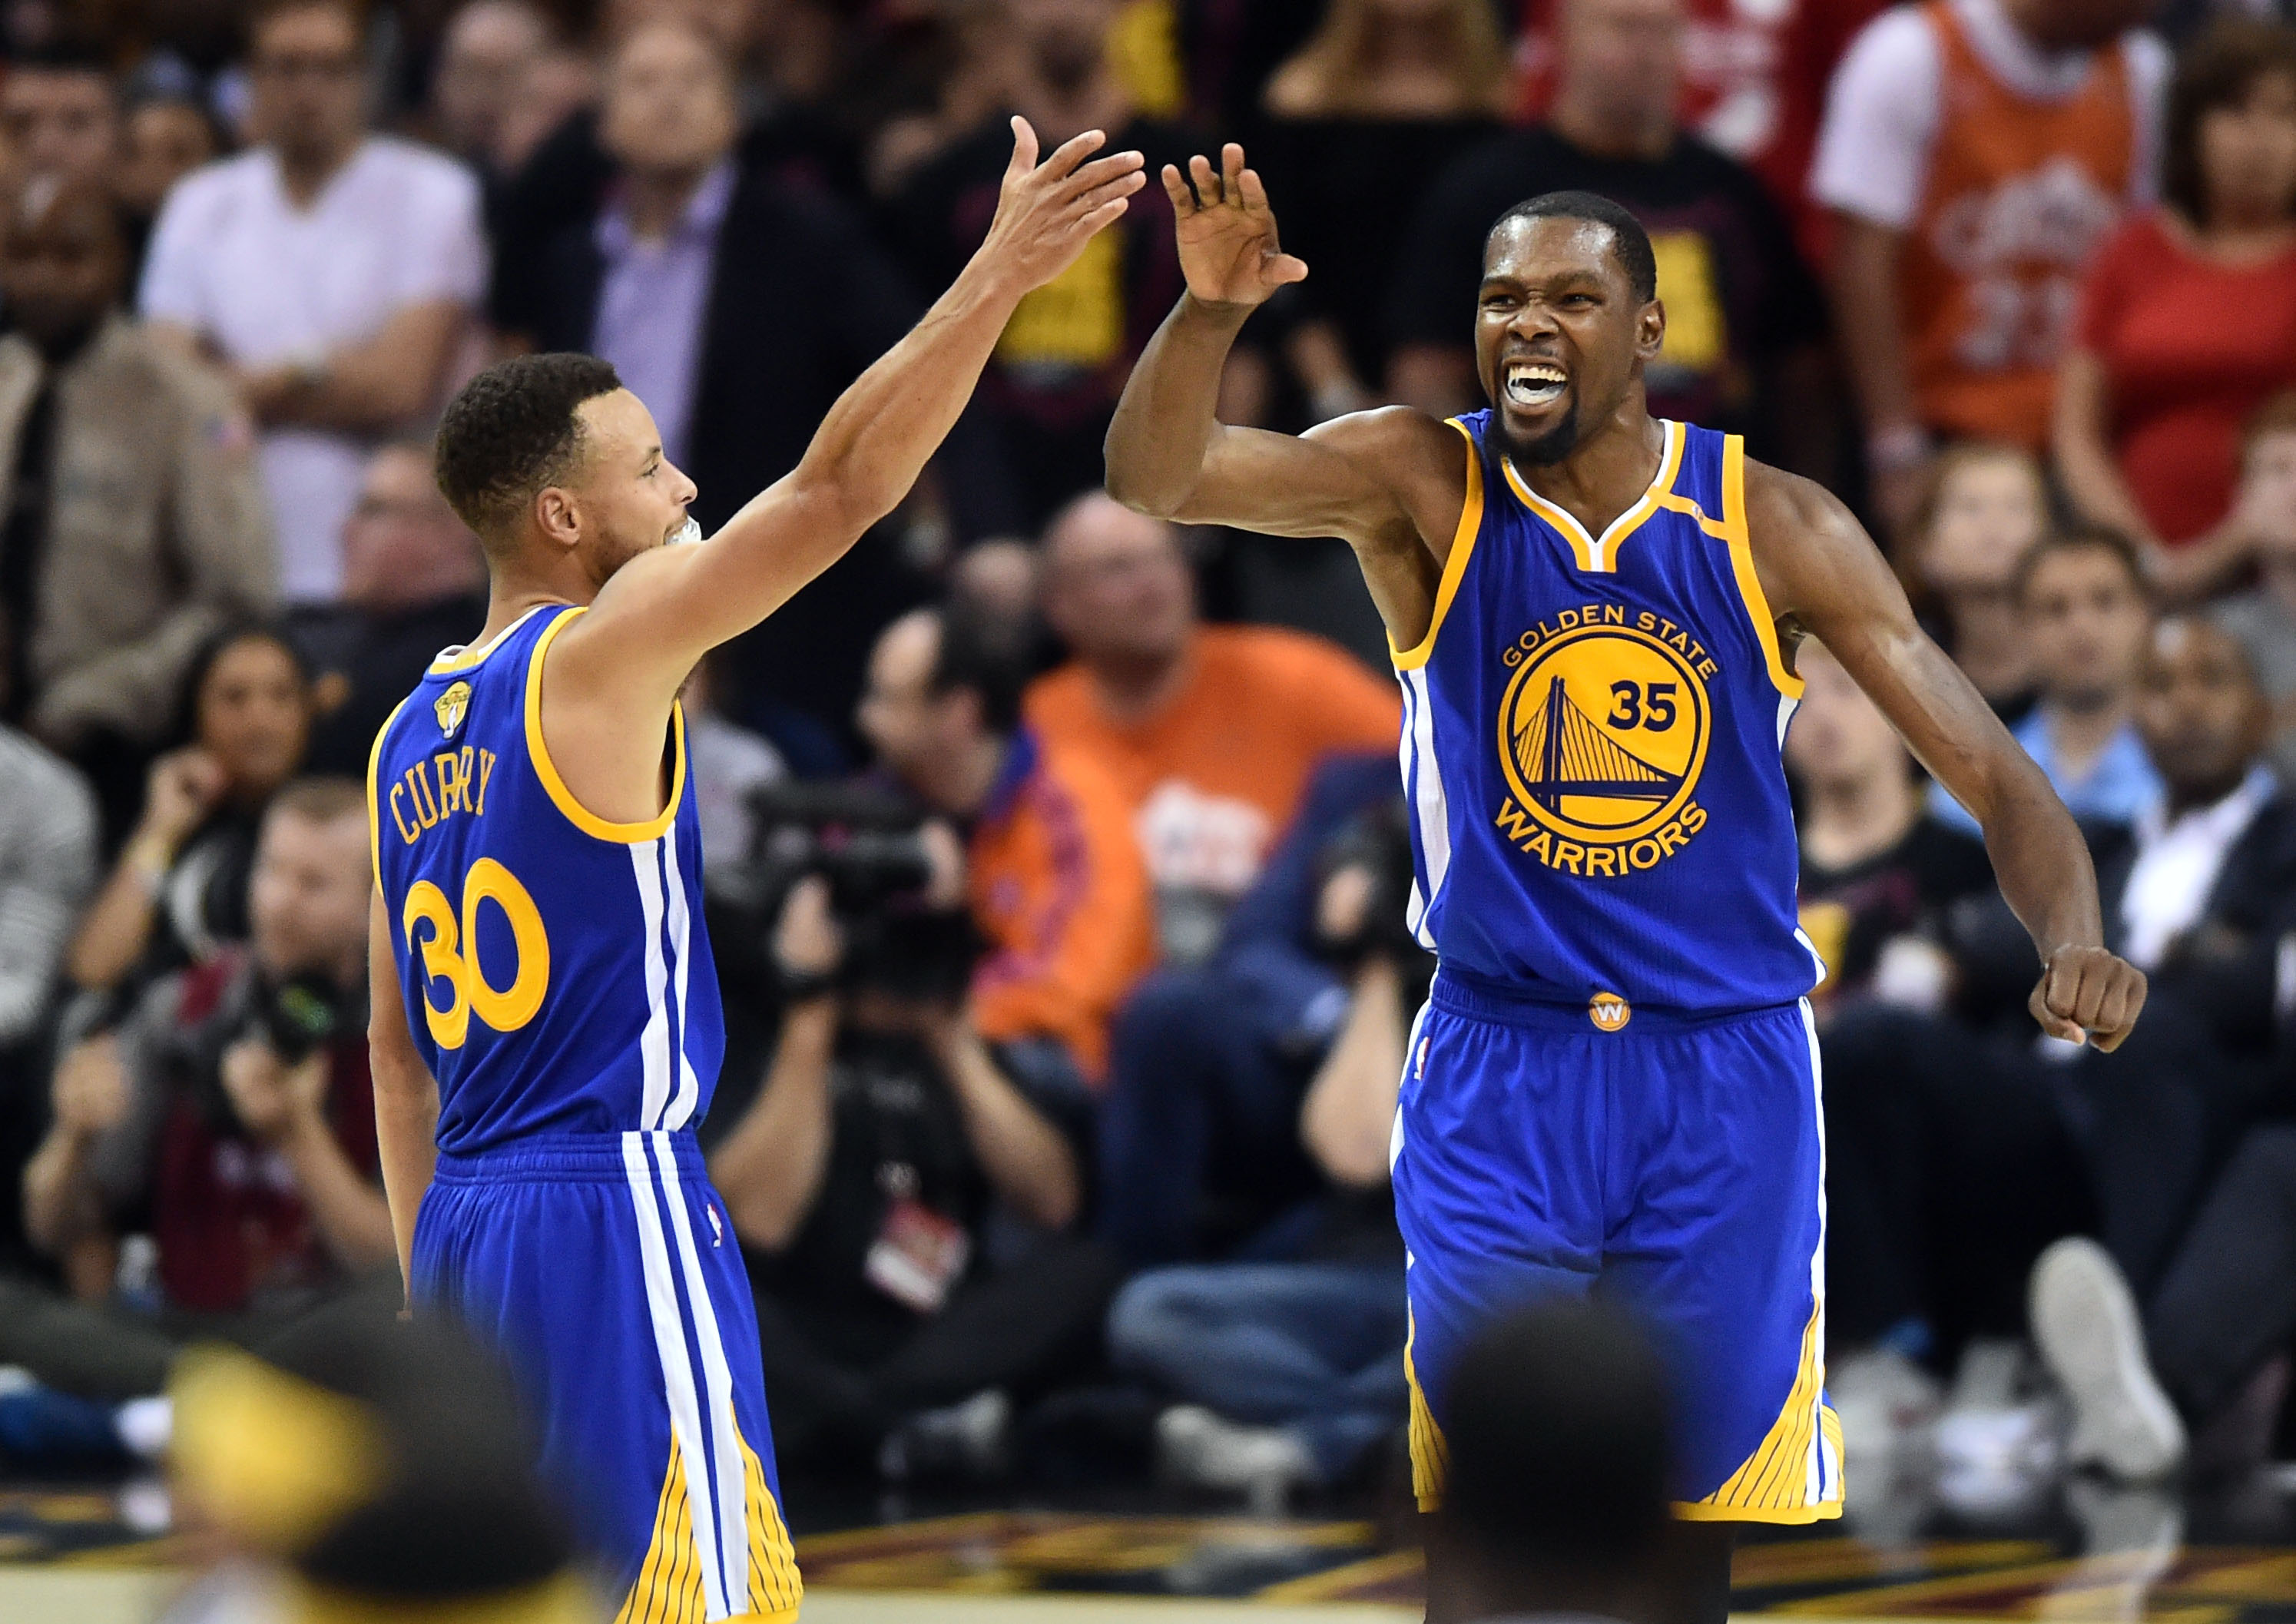 Golden State Warriors vs Cleveland Cavaliers Results